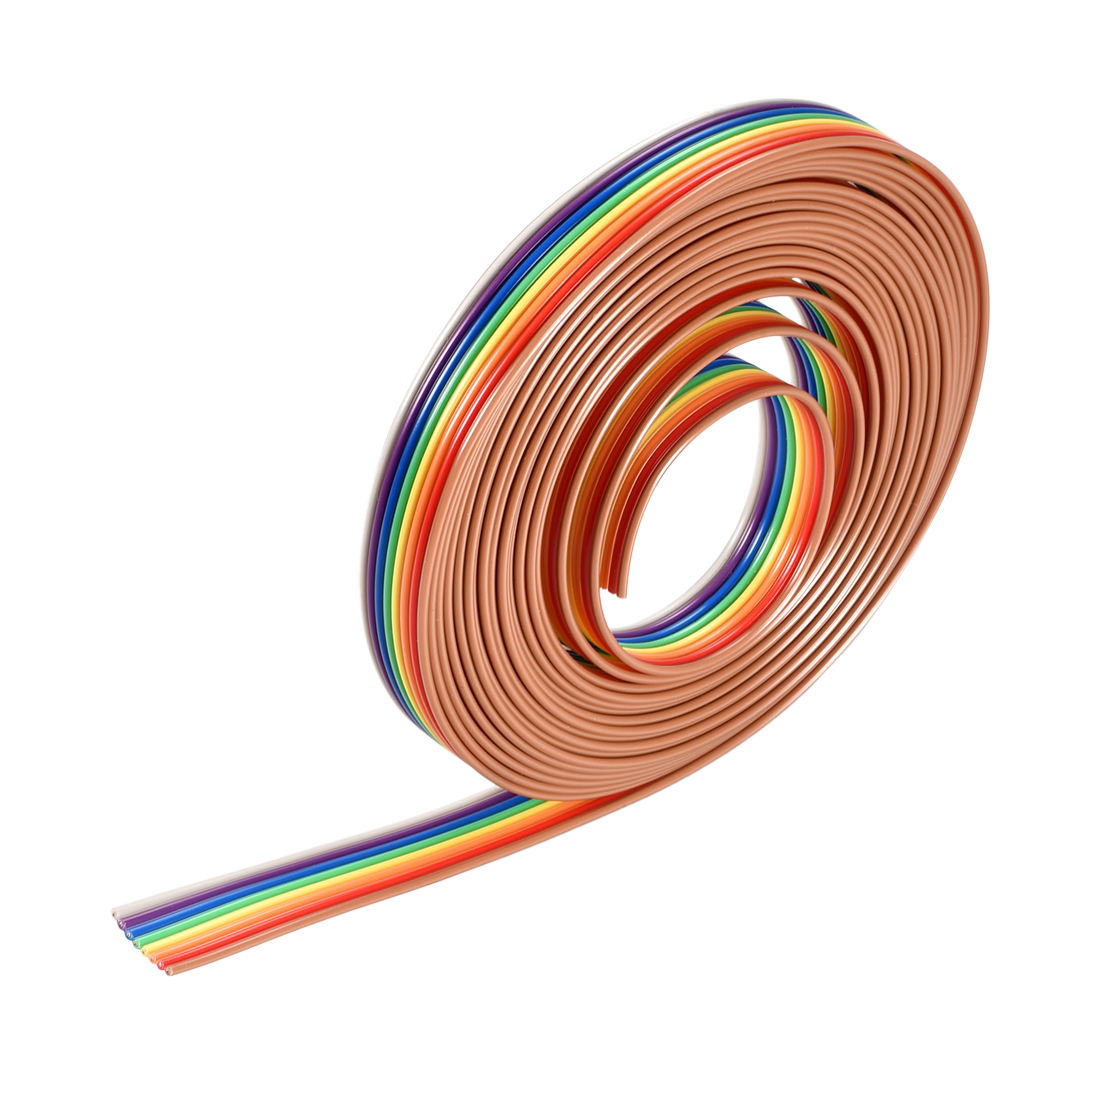 IDC Rainbow Wire Flat Ribbon Cable 8P 1.27mm Pitch 3meter/9.8ft Length